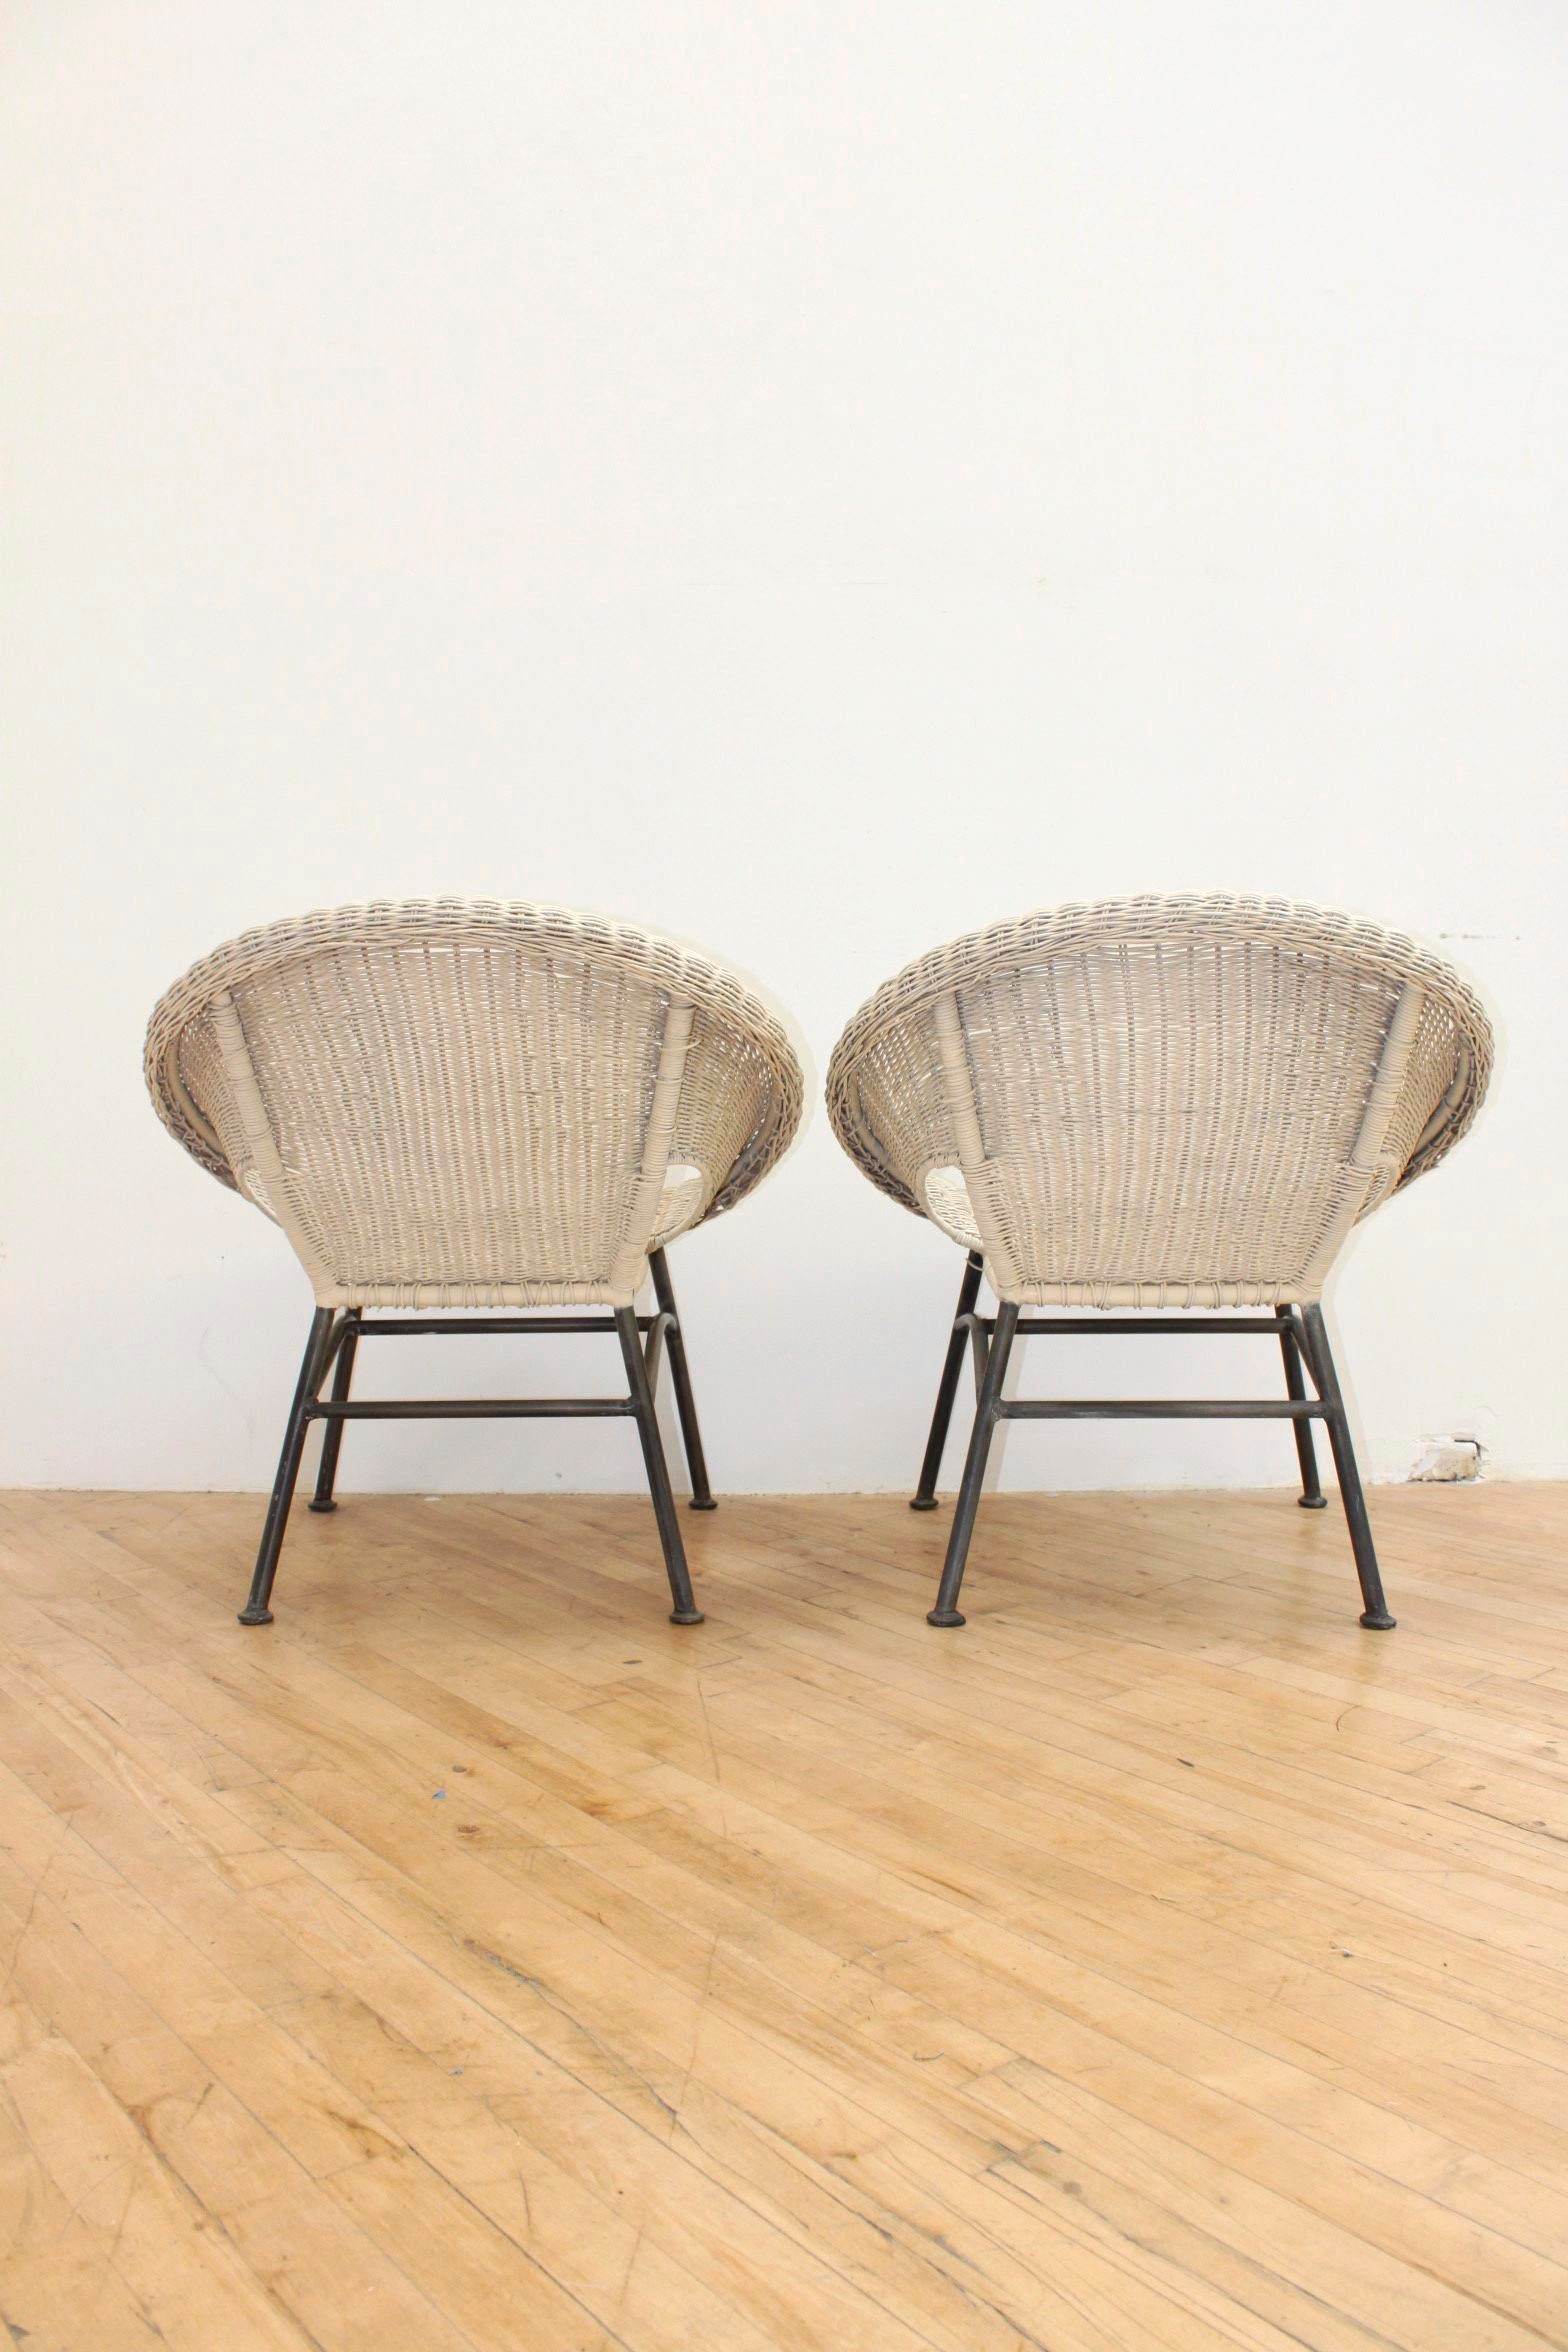 Merveilleux Industrial Mid Century Modern Wicker And Iron Stacking Saucer Chairs   A  Pair For Sale